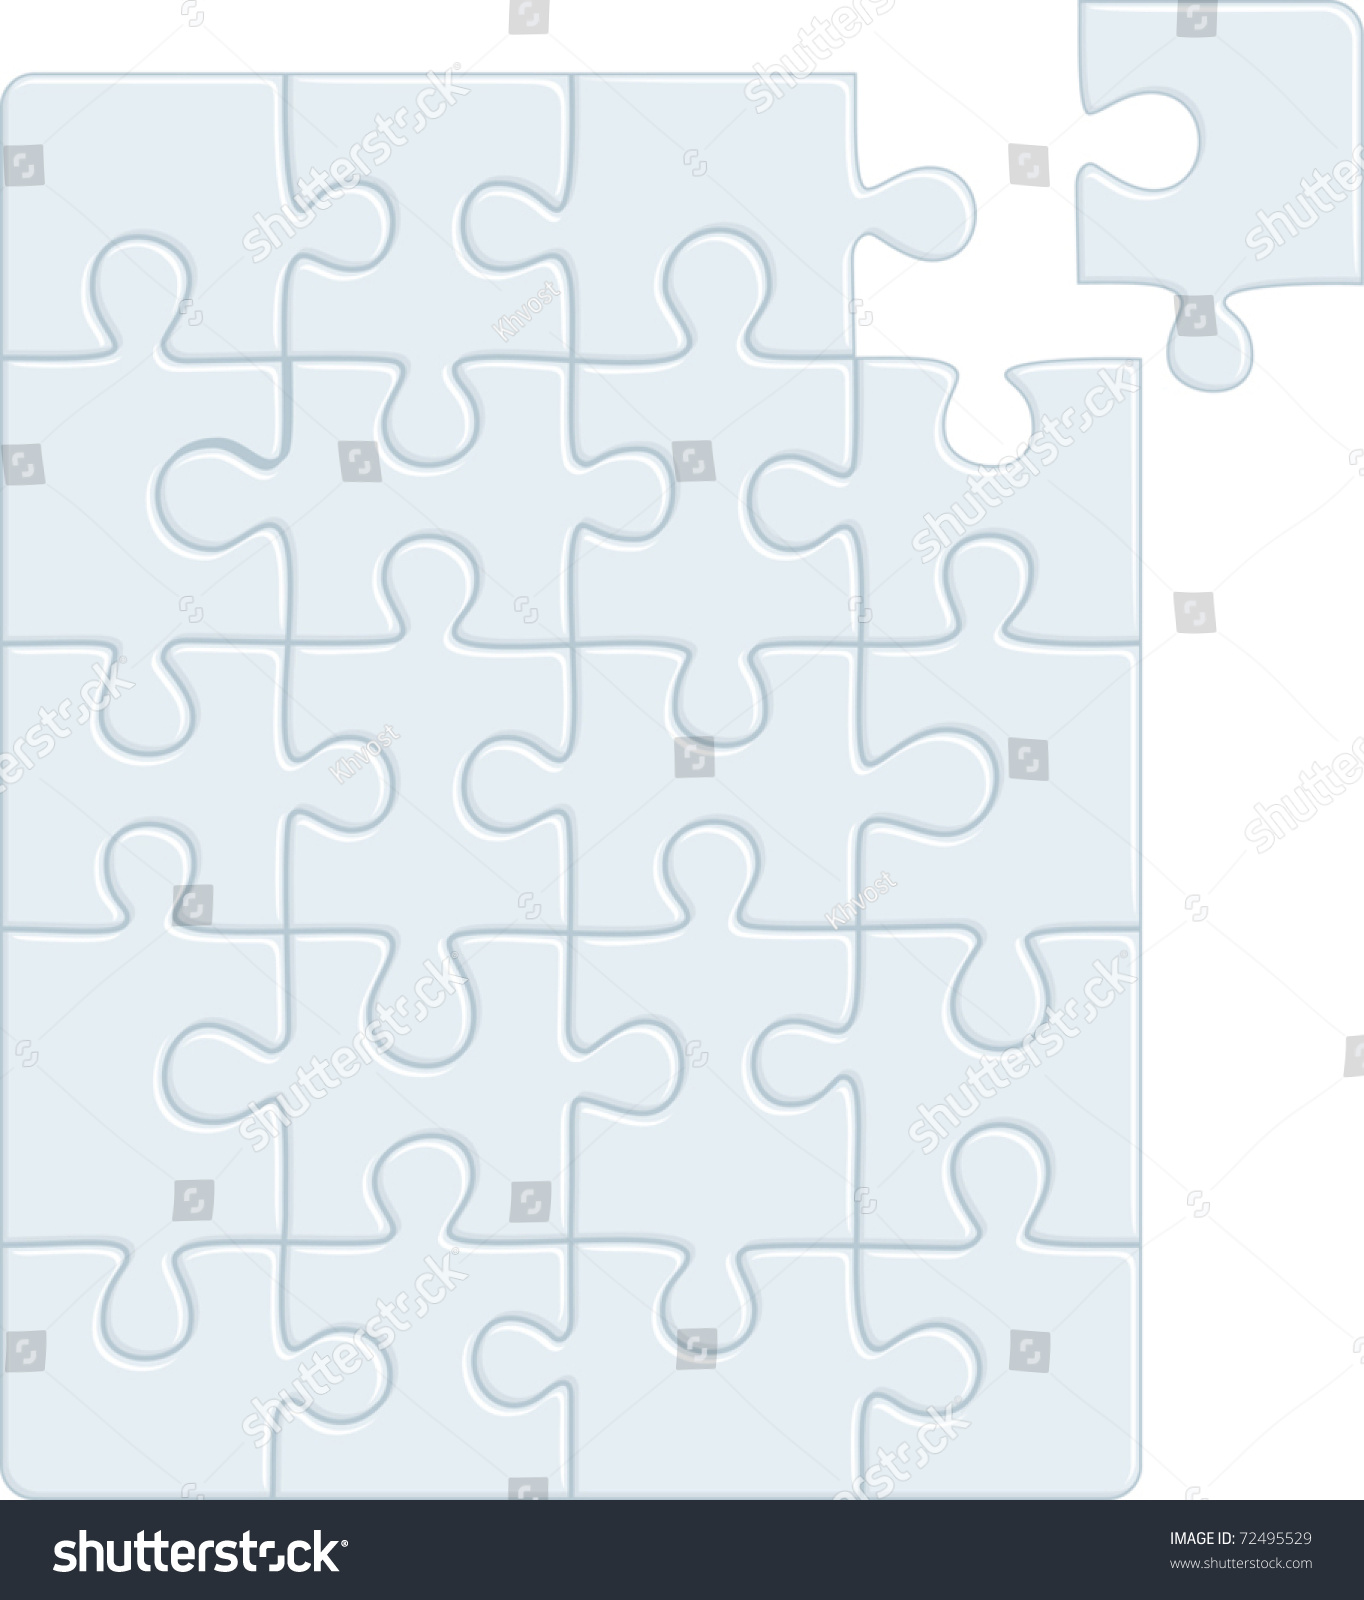 Puzzle Pattern Removable Pieces Vector Illustration Stock ...